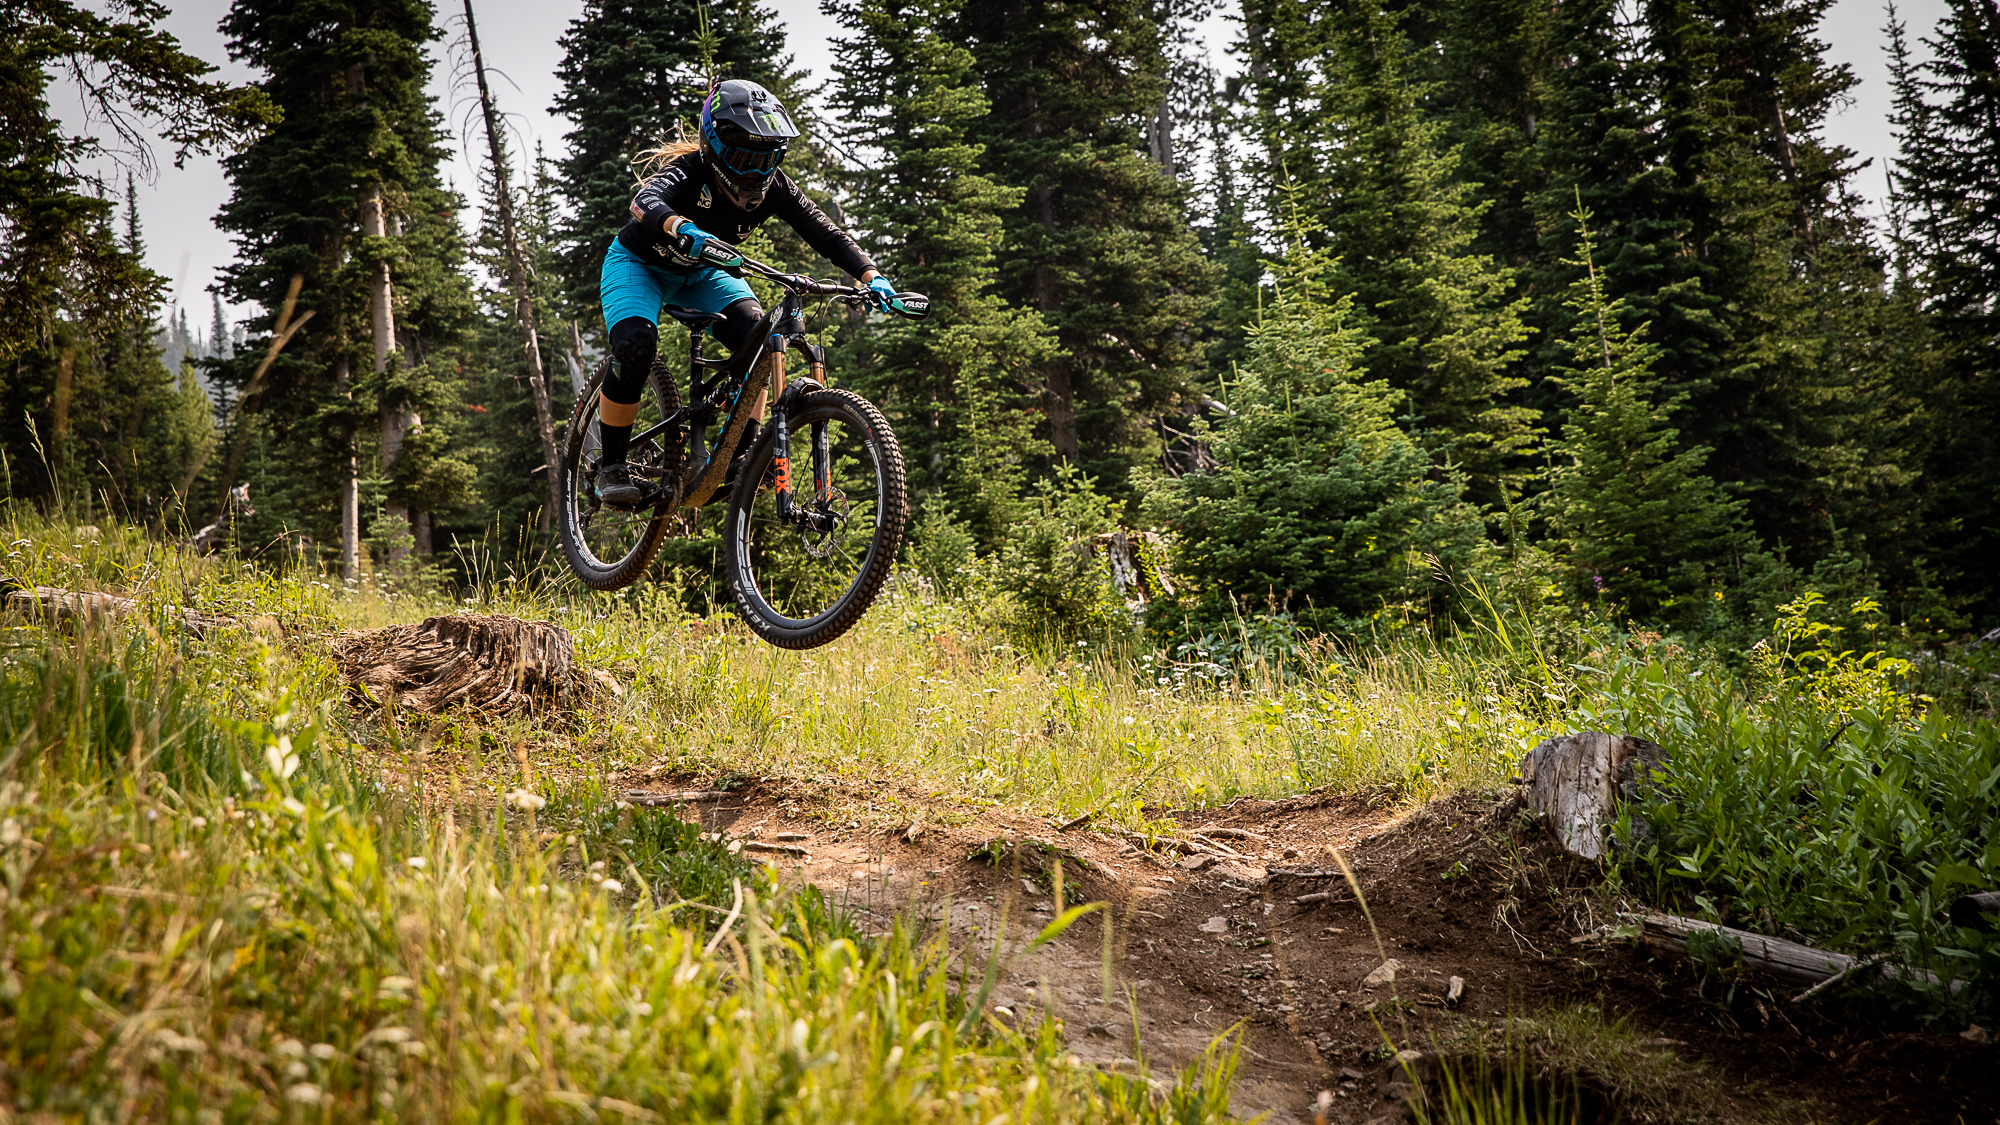 KHS Pro MTB rider Nik Nestoroff on track for a practice run at the 2nd round of the Big Sky Montana Enduro series.